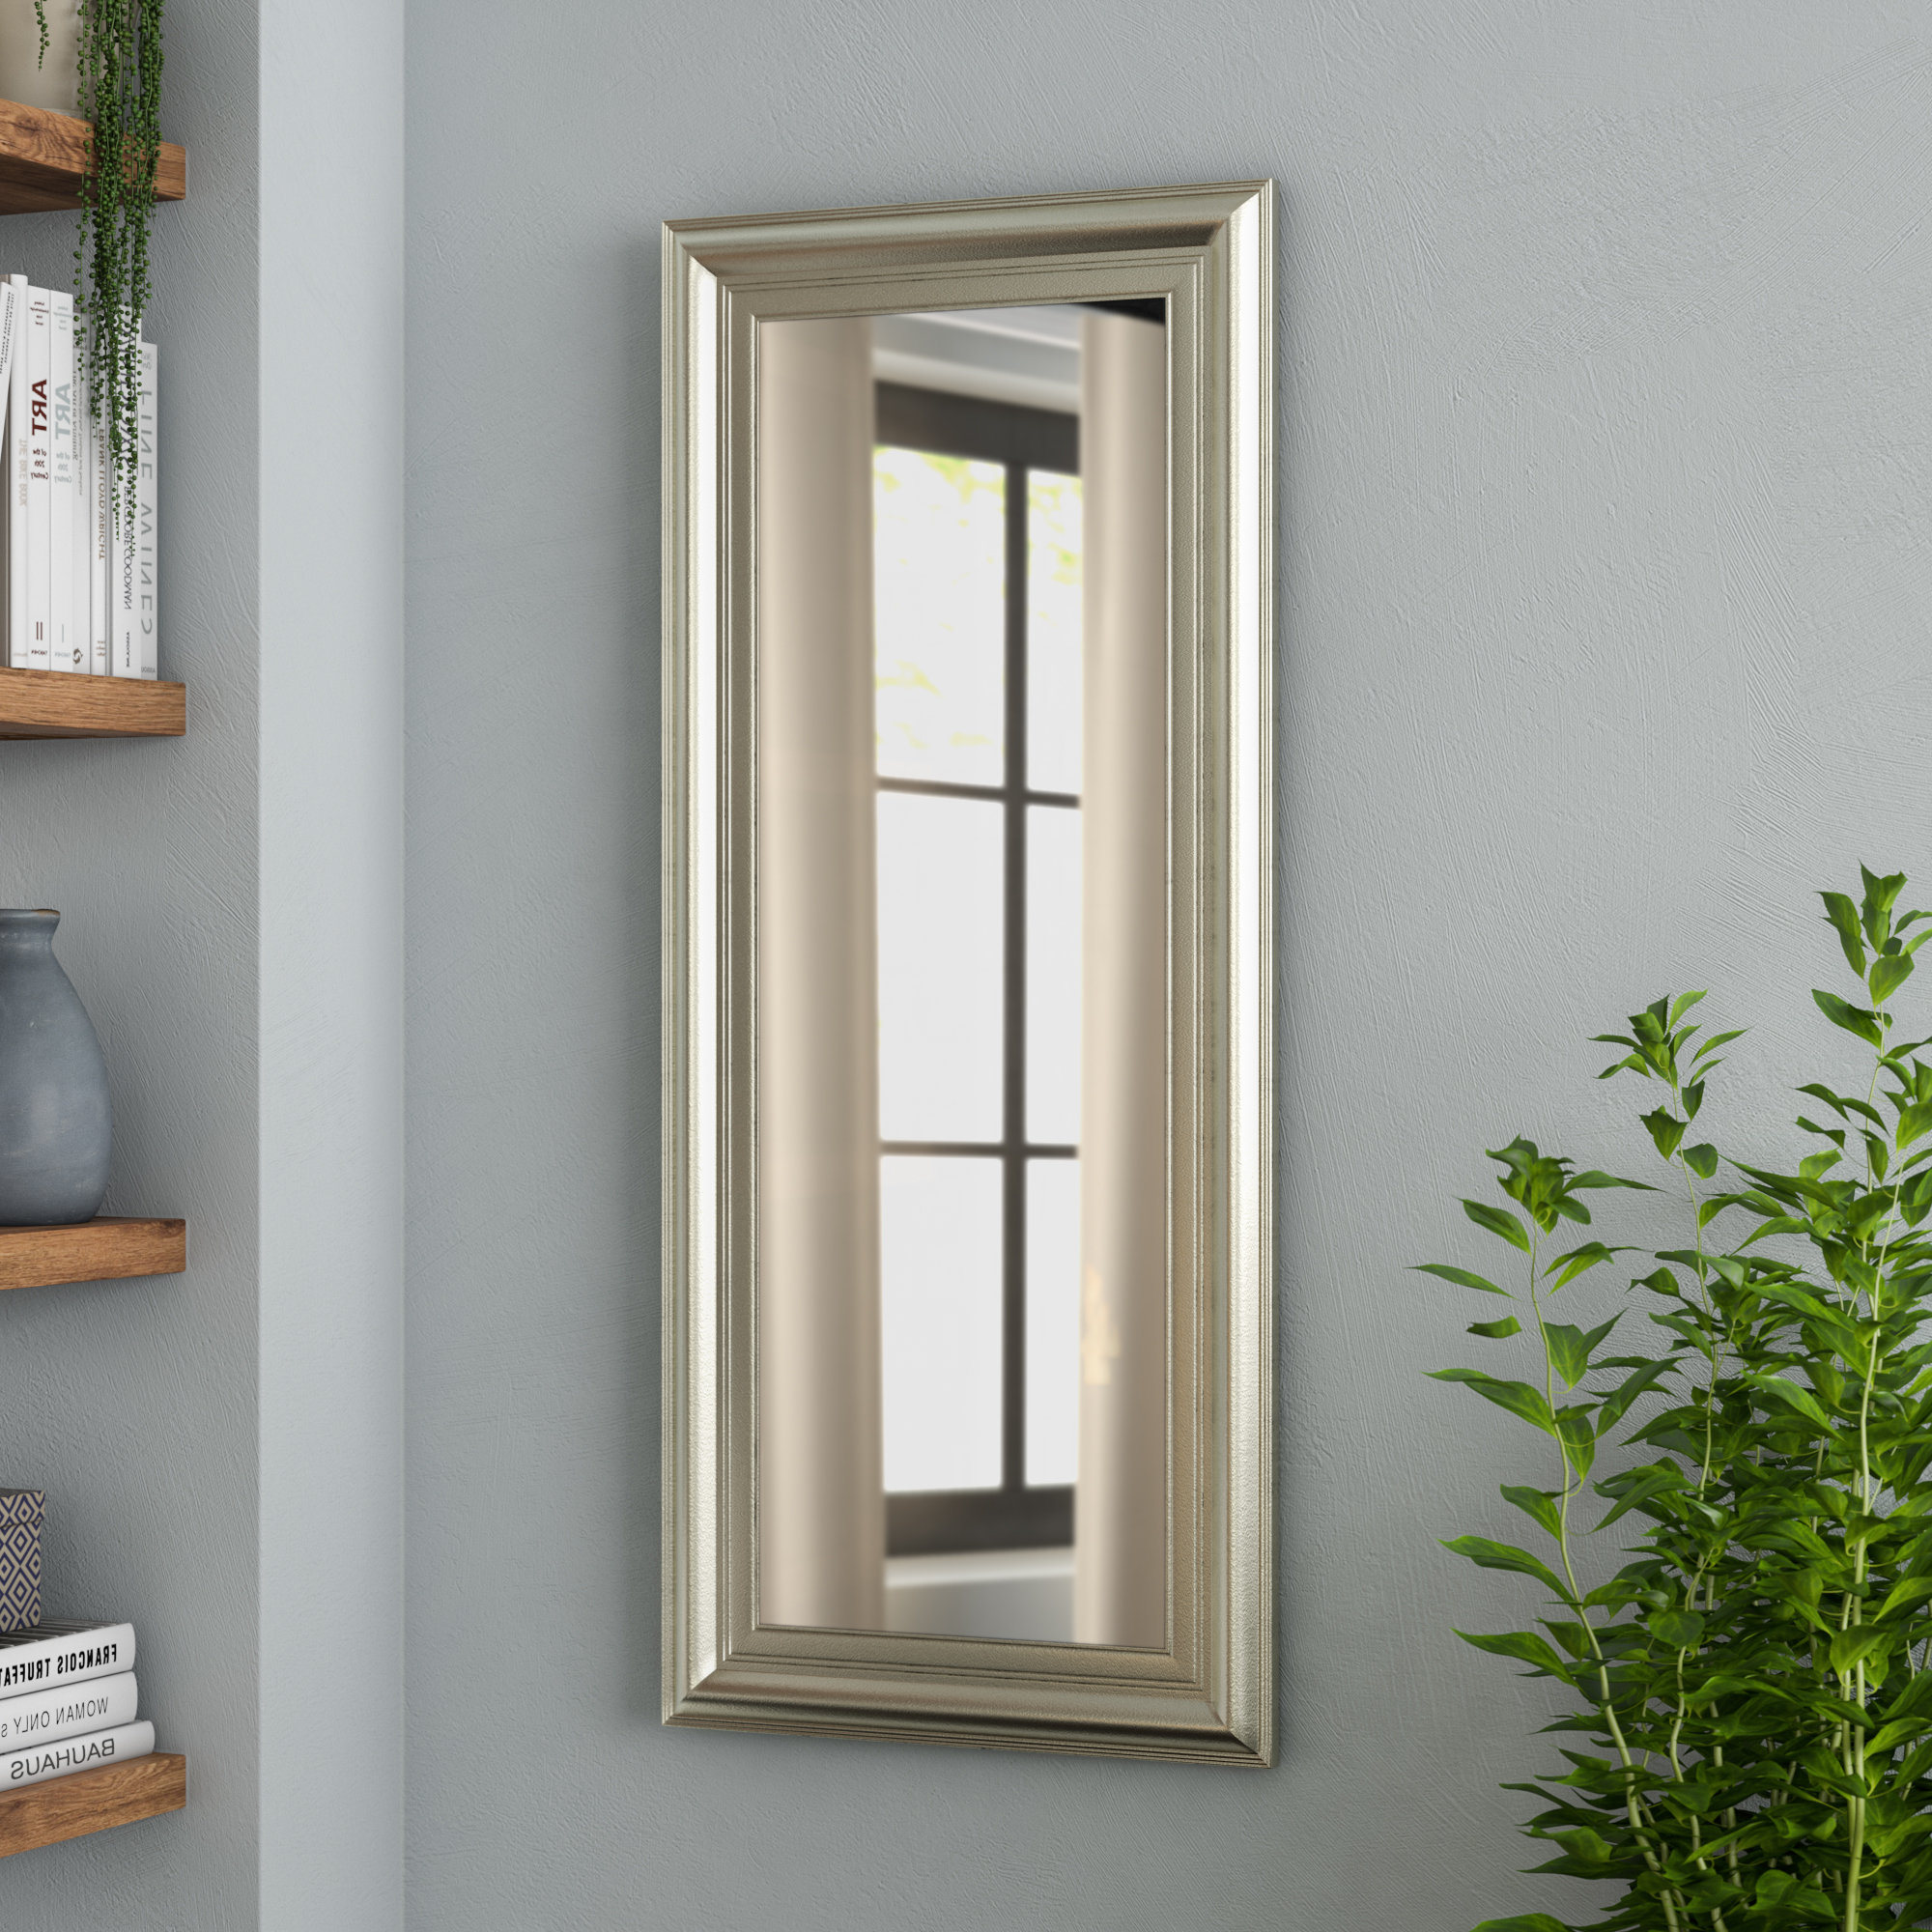 Dedrick Decorative Framed Modern And Contemporary Wall Mirror With Regard To Newest Decorative Contemporary Wall Mirrors (View 6 of 20)